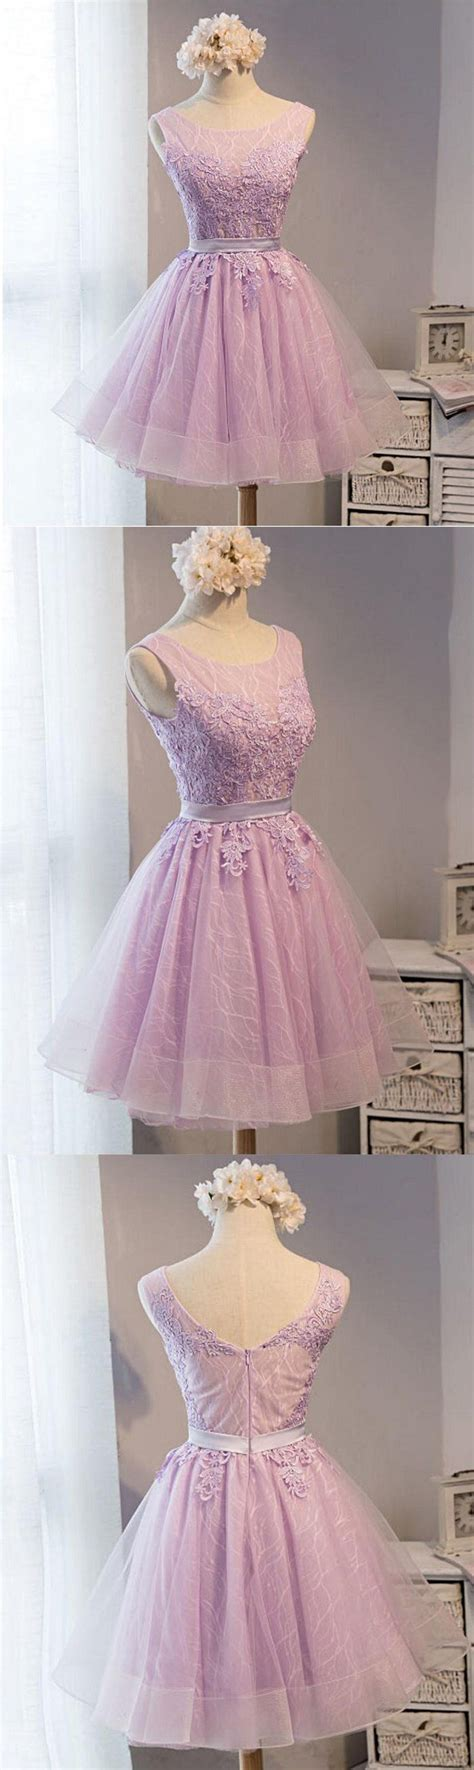 lovely lilac lace short homecoming prom dresses